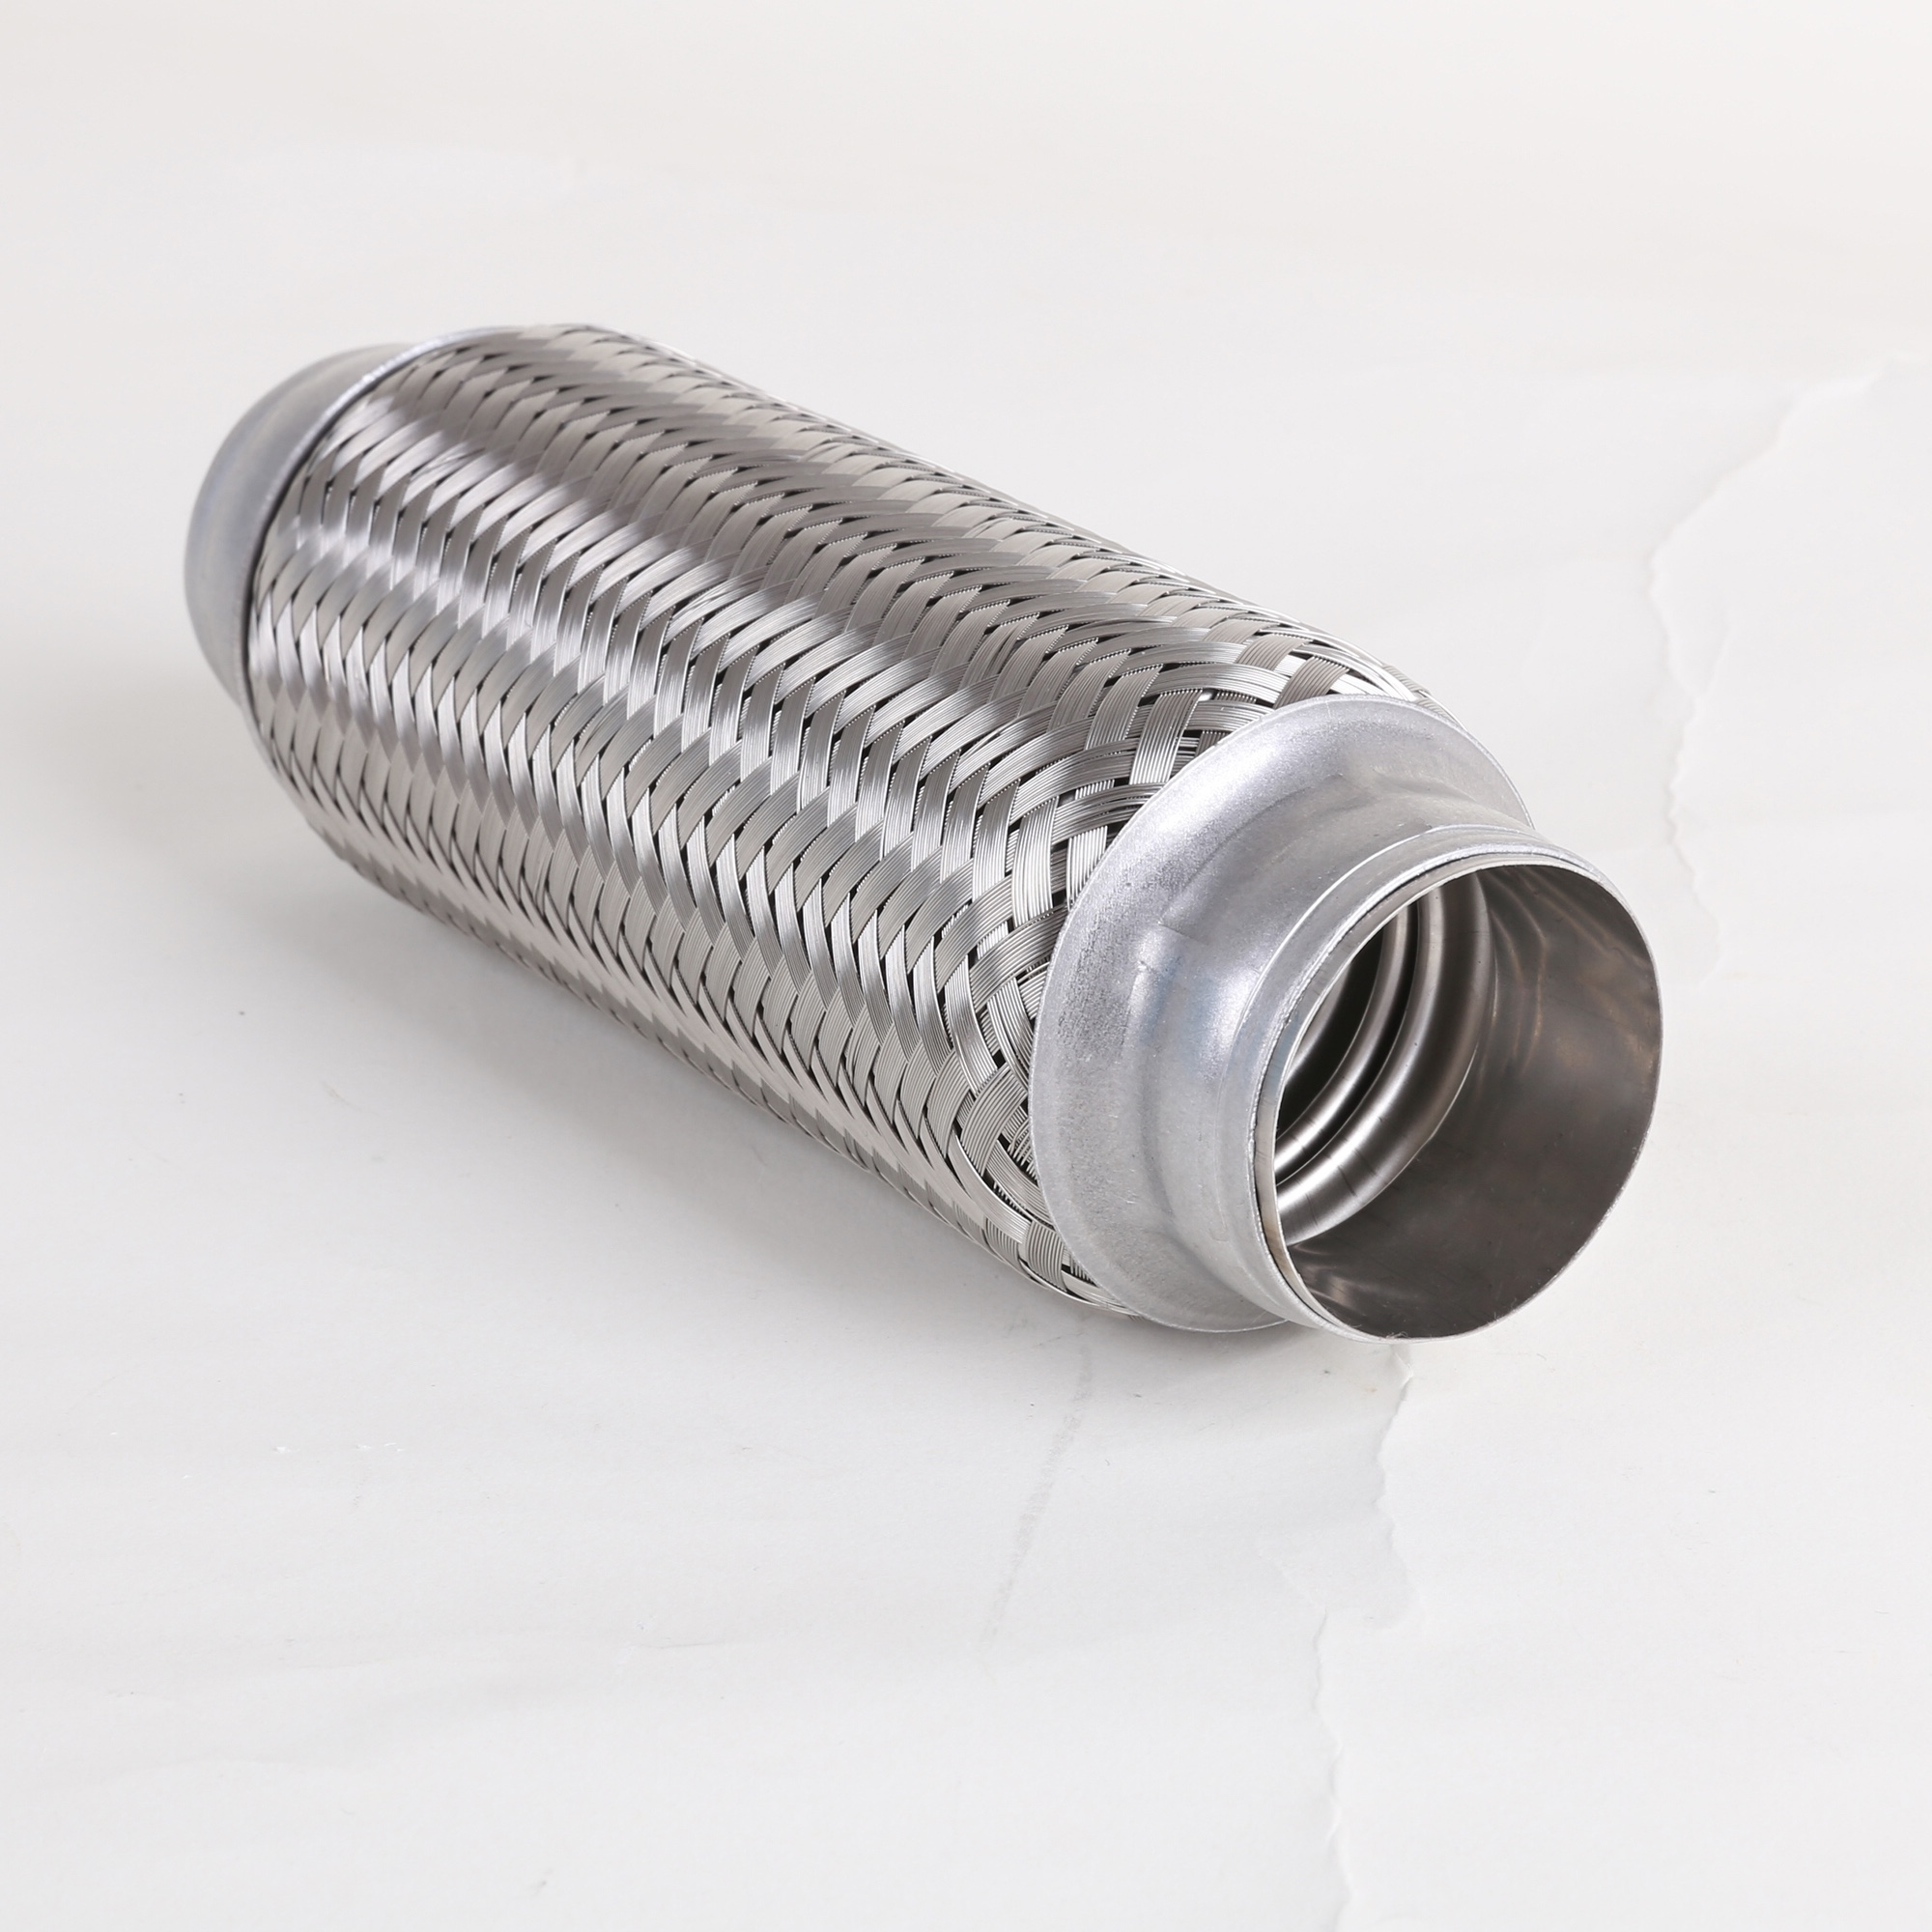 Stainless steel 3 inch diameter automotive flex exhaust pipe